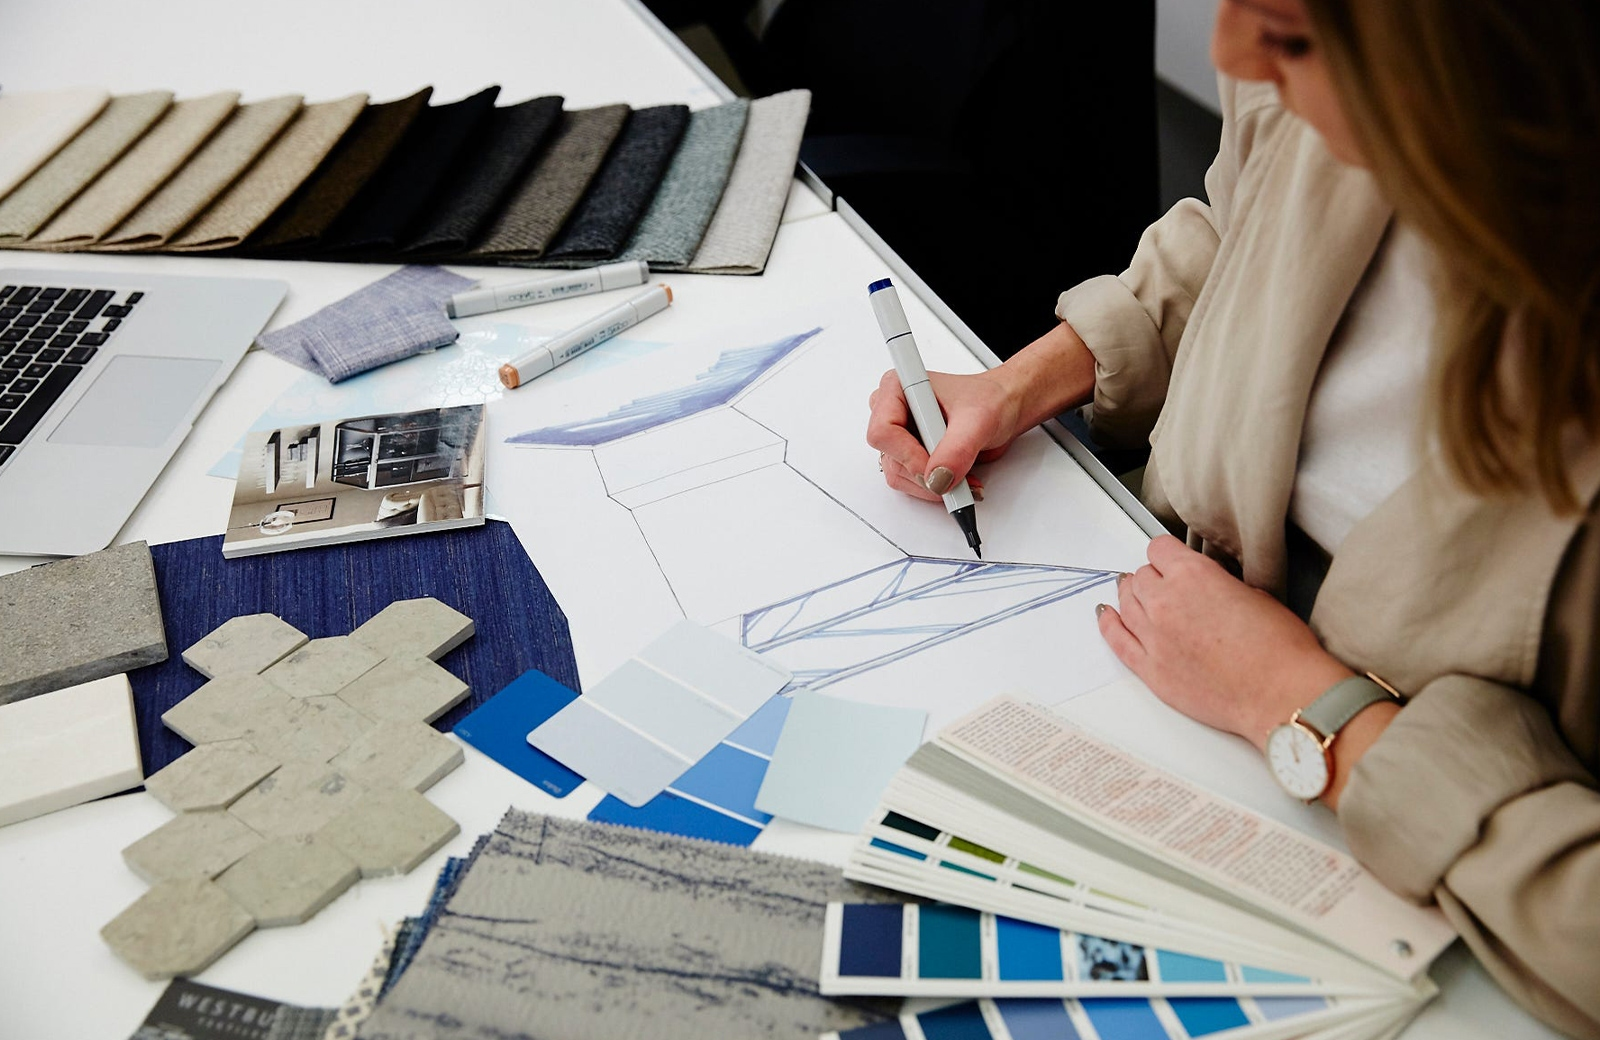 Invest In You: About The Design School